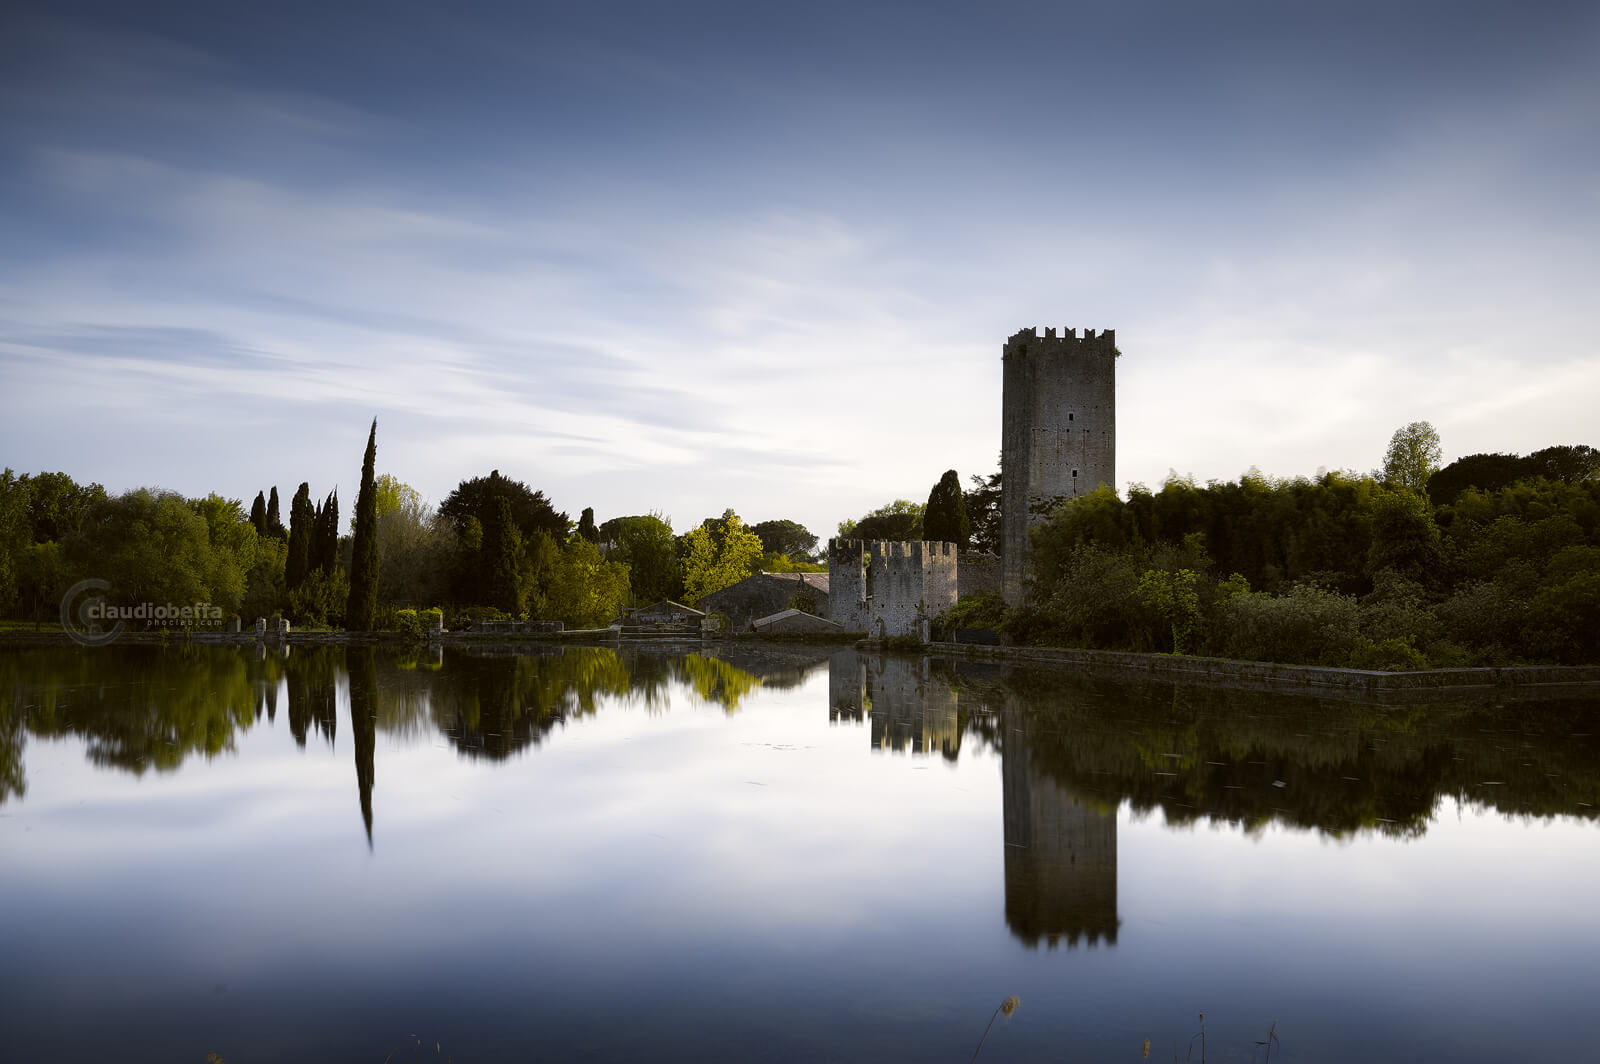 Garden of Ninfa, Garden, Ninfa, Italy, Tower, Lake, Reflections, Nature, Spring, Travel, Travel Photography, Ancient, Romantic